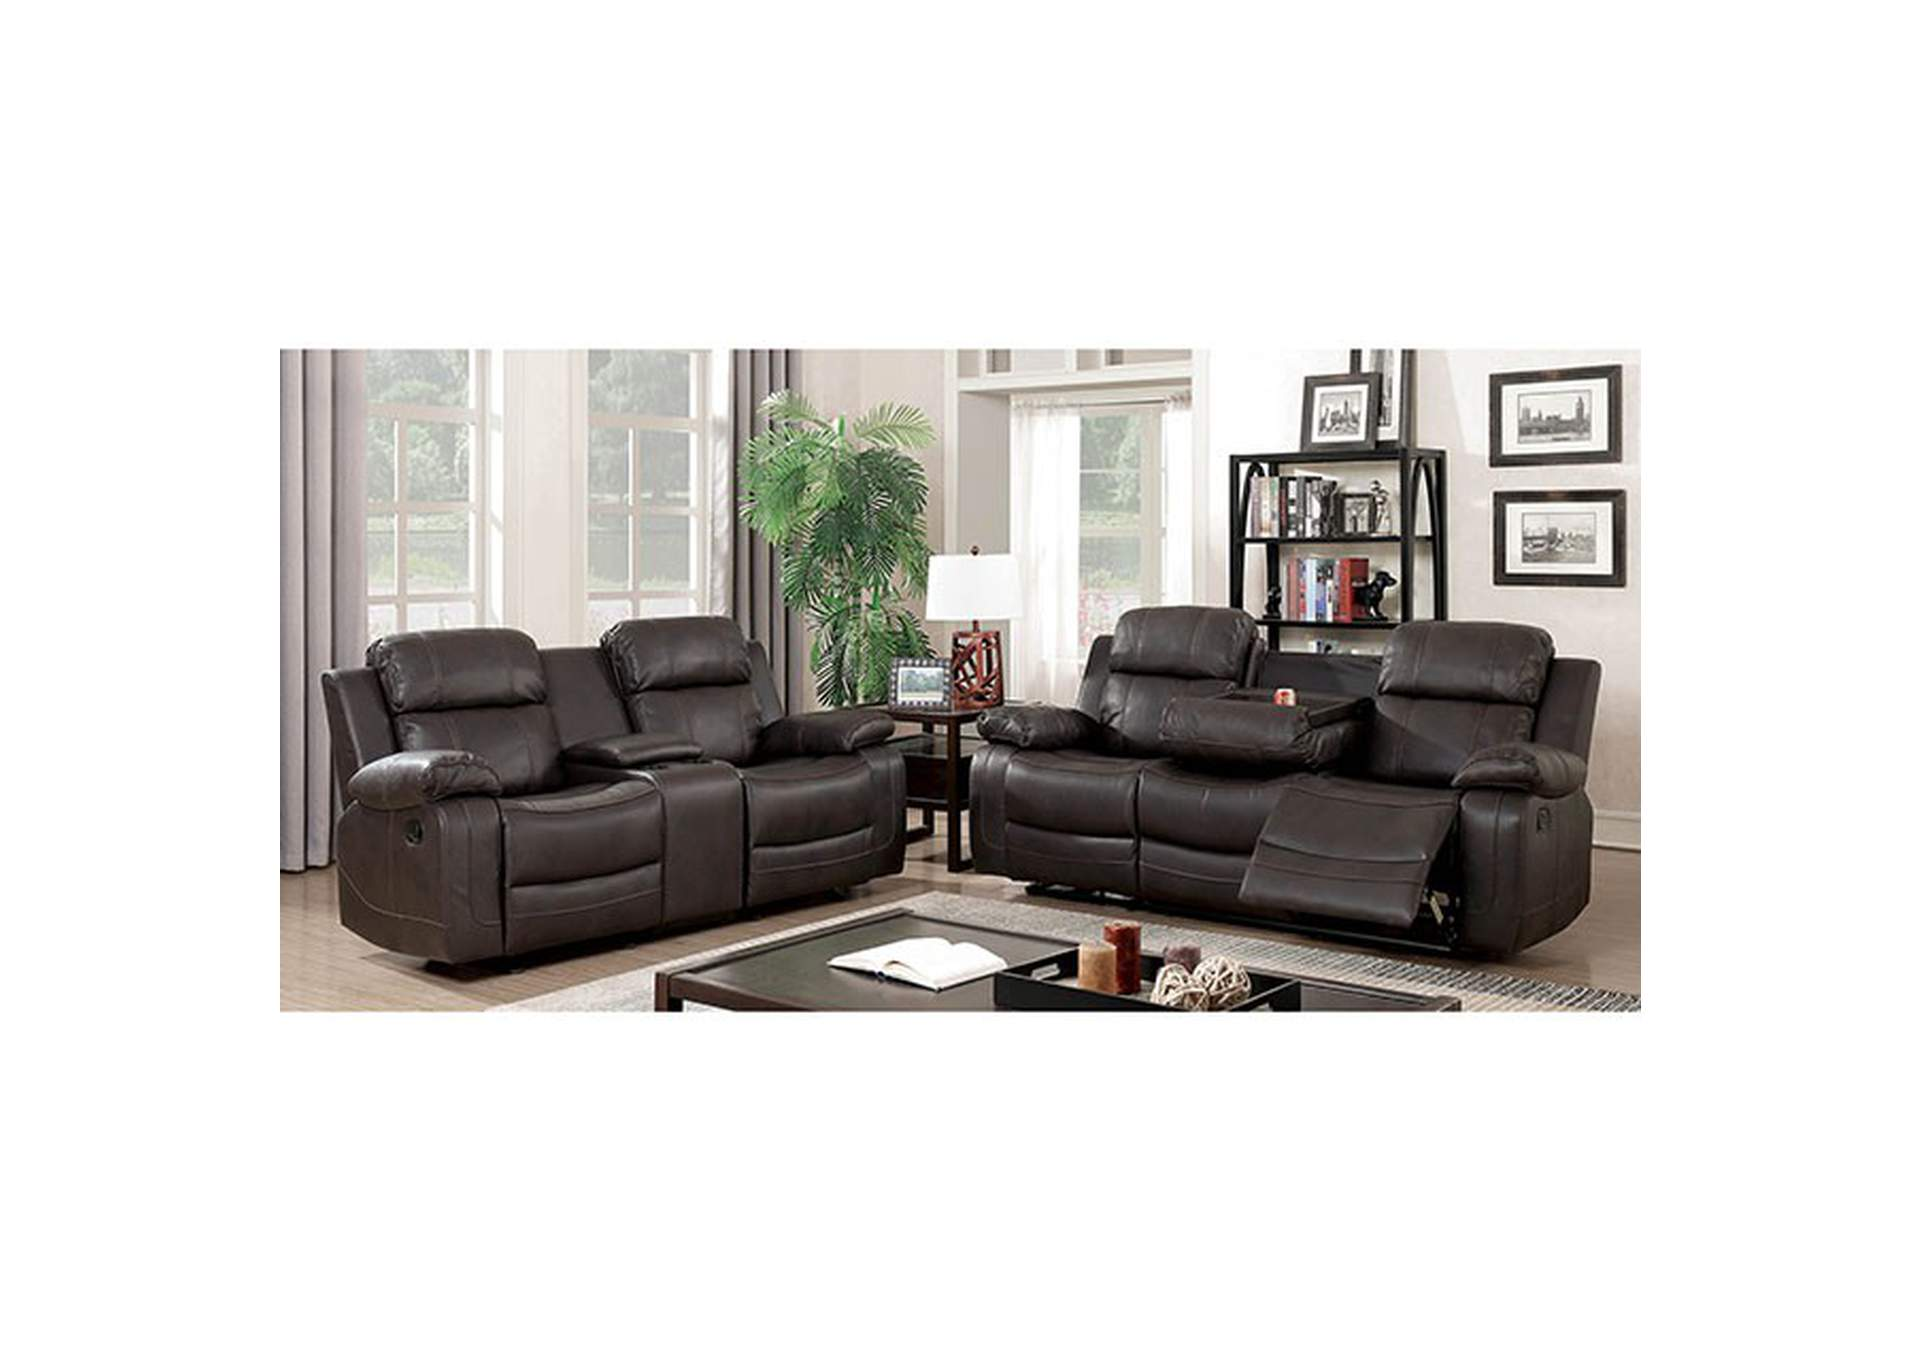 Pondera Dark Brown Sofa,Furniture of America